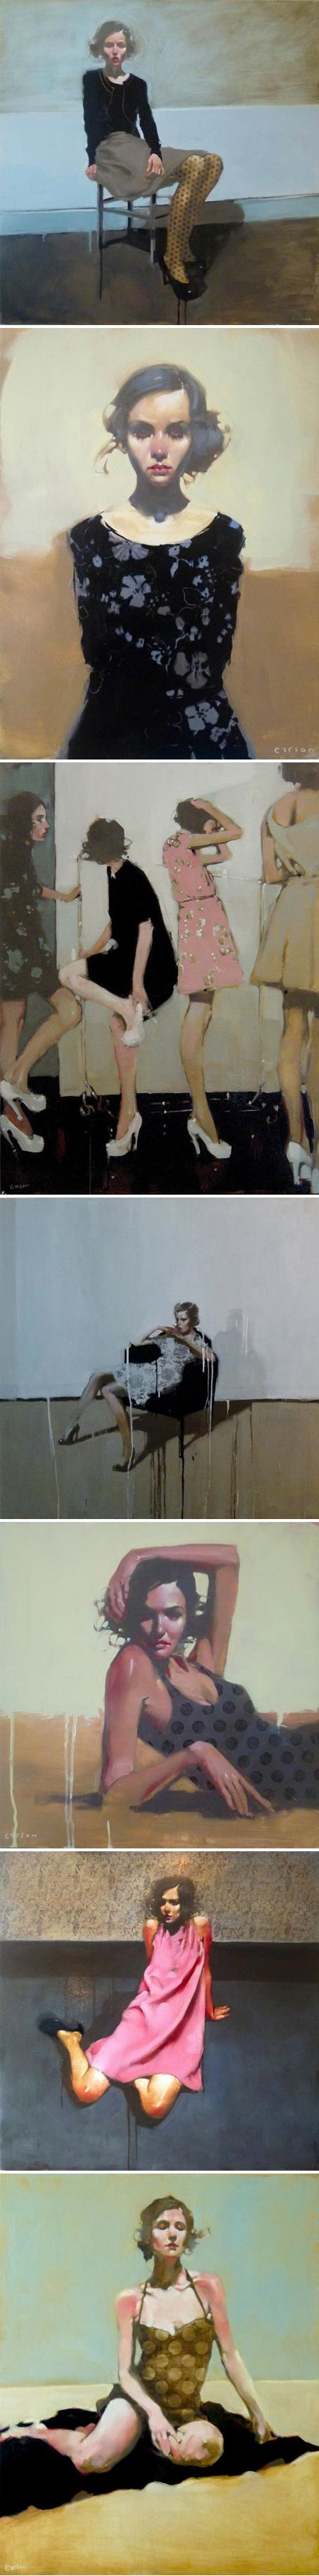 Michael Carson, I love the pattern and fleeting colors or the wash techniques.